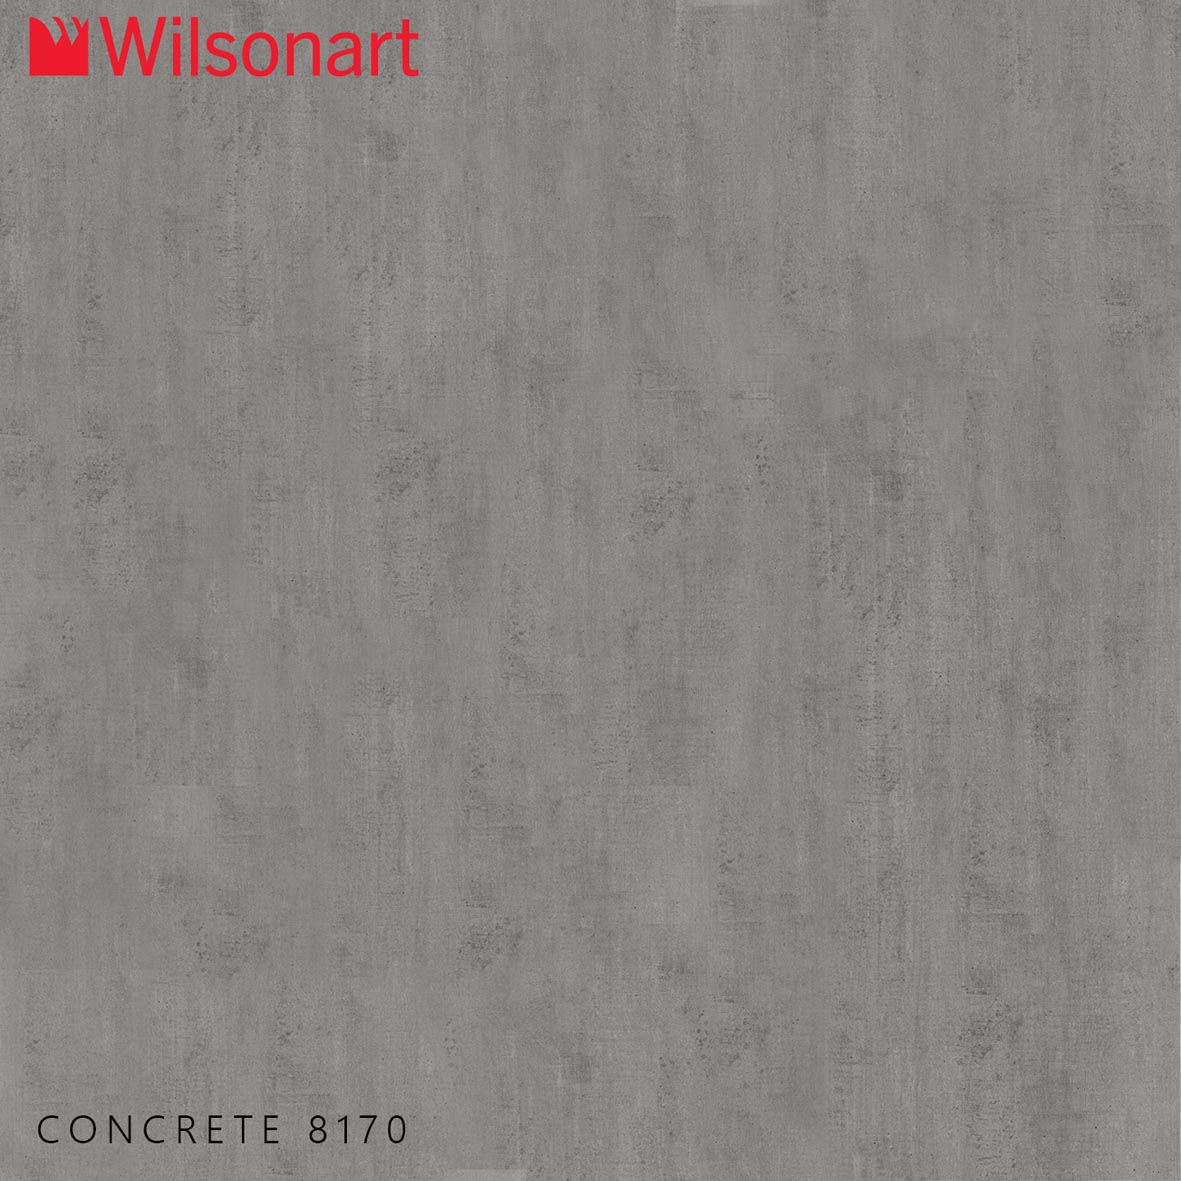 New Concrete By Wilsonart The Kitchen And Bathroom Blog